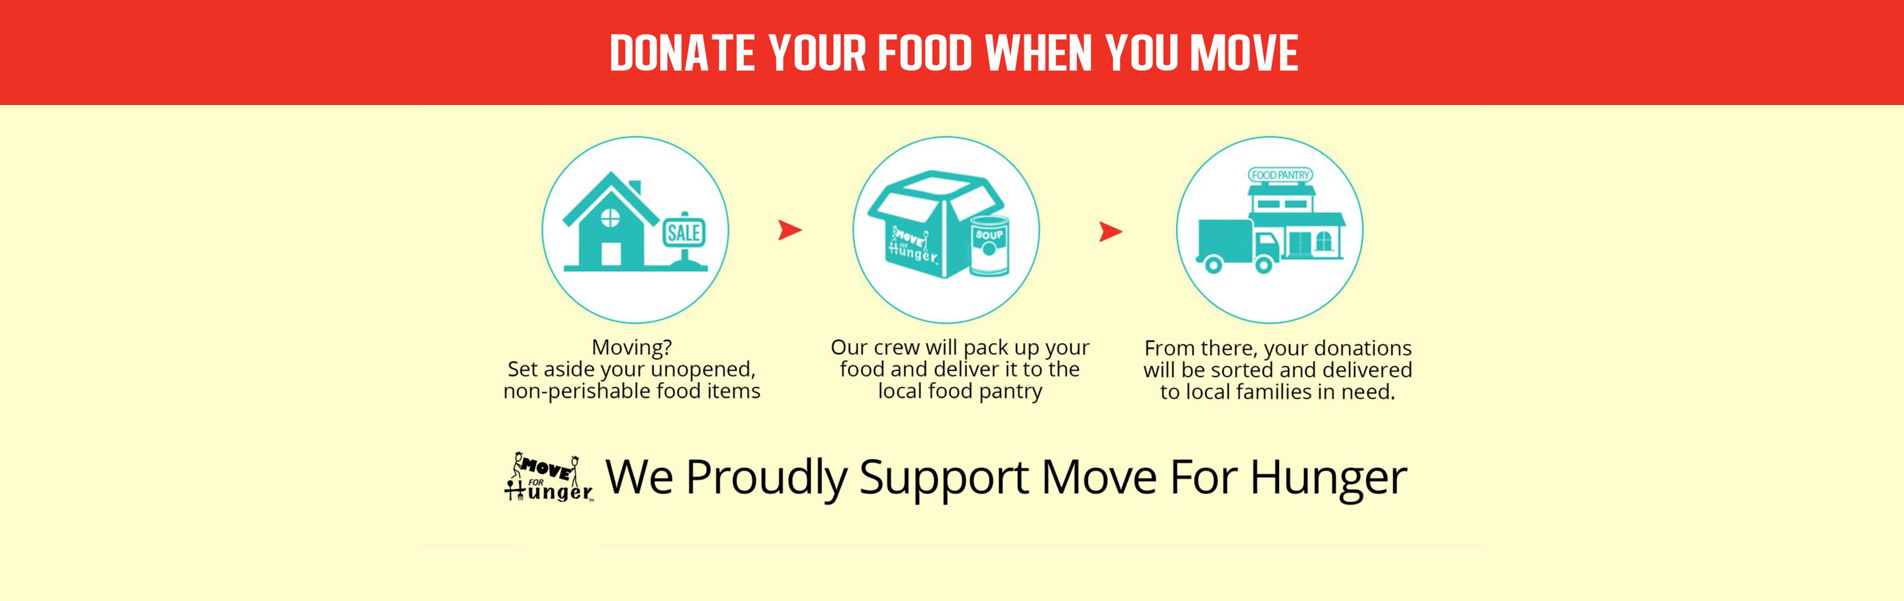 Donate Food When You Move